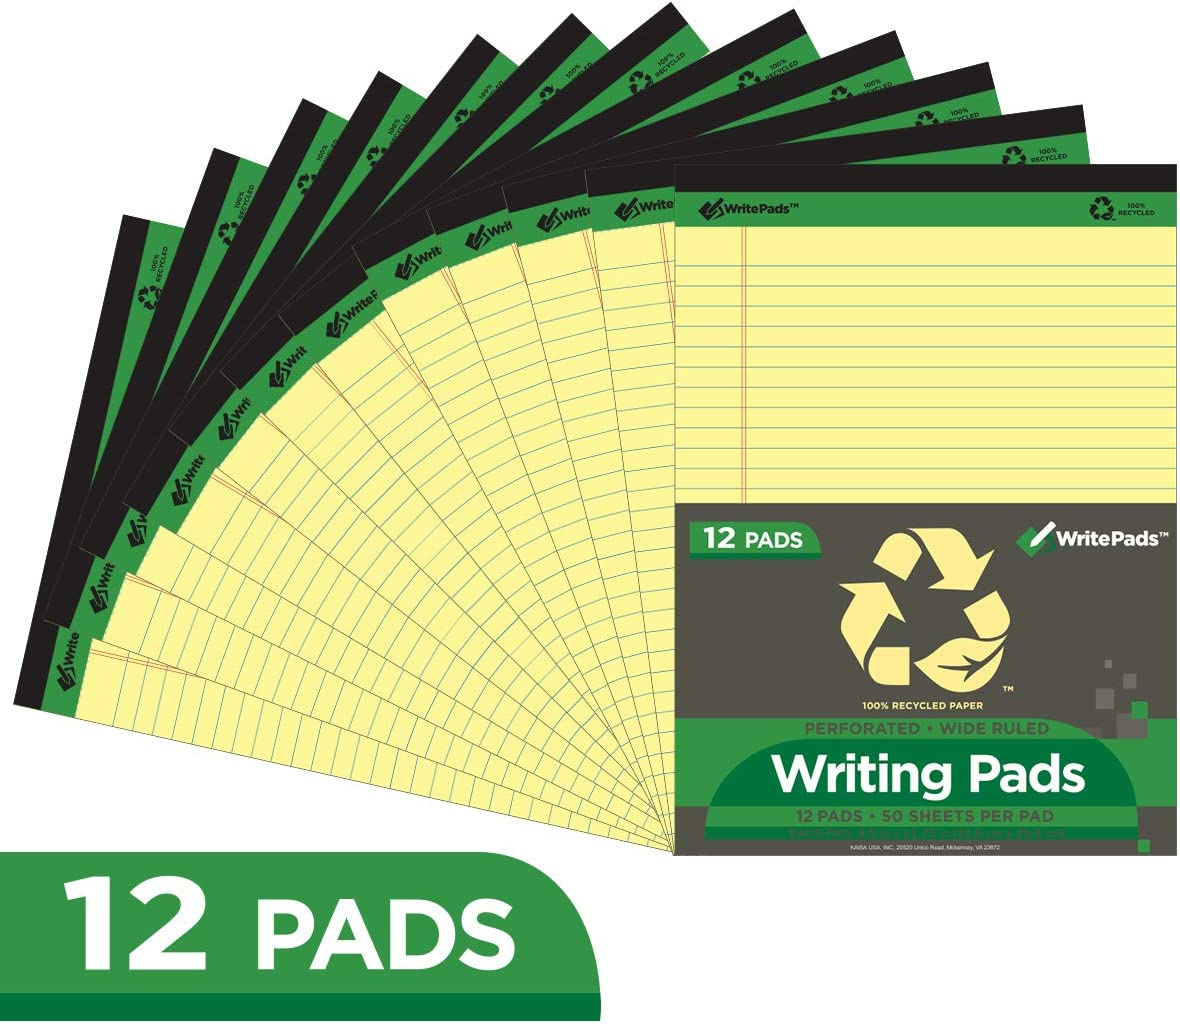 "KAISA Legal Pads/Writing Pads Recycled Paper 8.5""x11.75"" Wide Ruled Perforated 50 sheets Writed Pad, Canary (Pack of 12pc) KSU-5668"